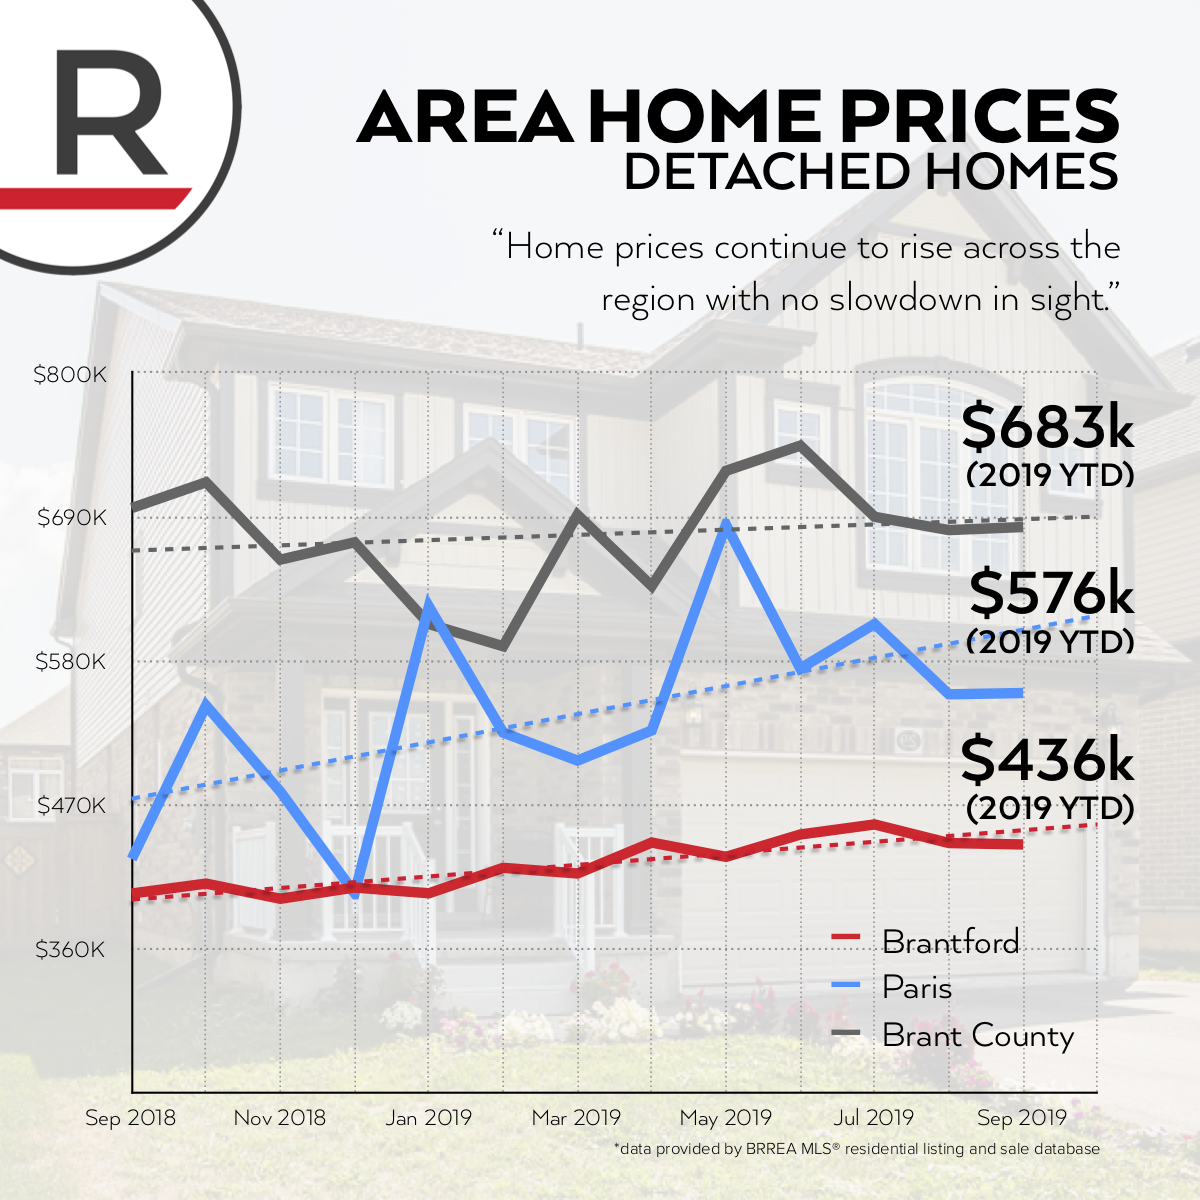 AverageHomePrices-Oct2019.png